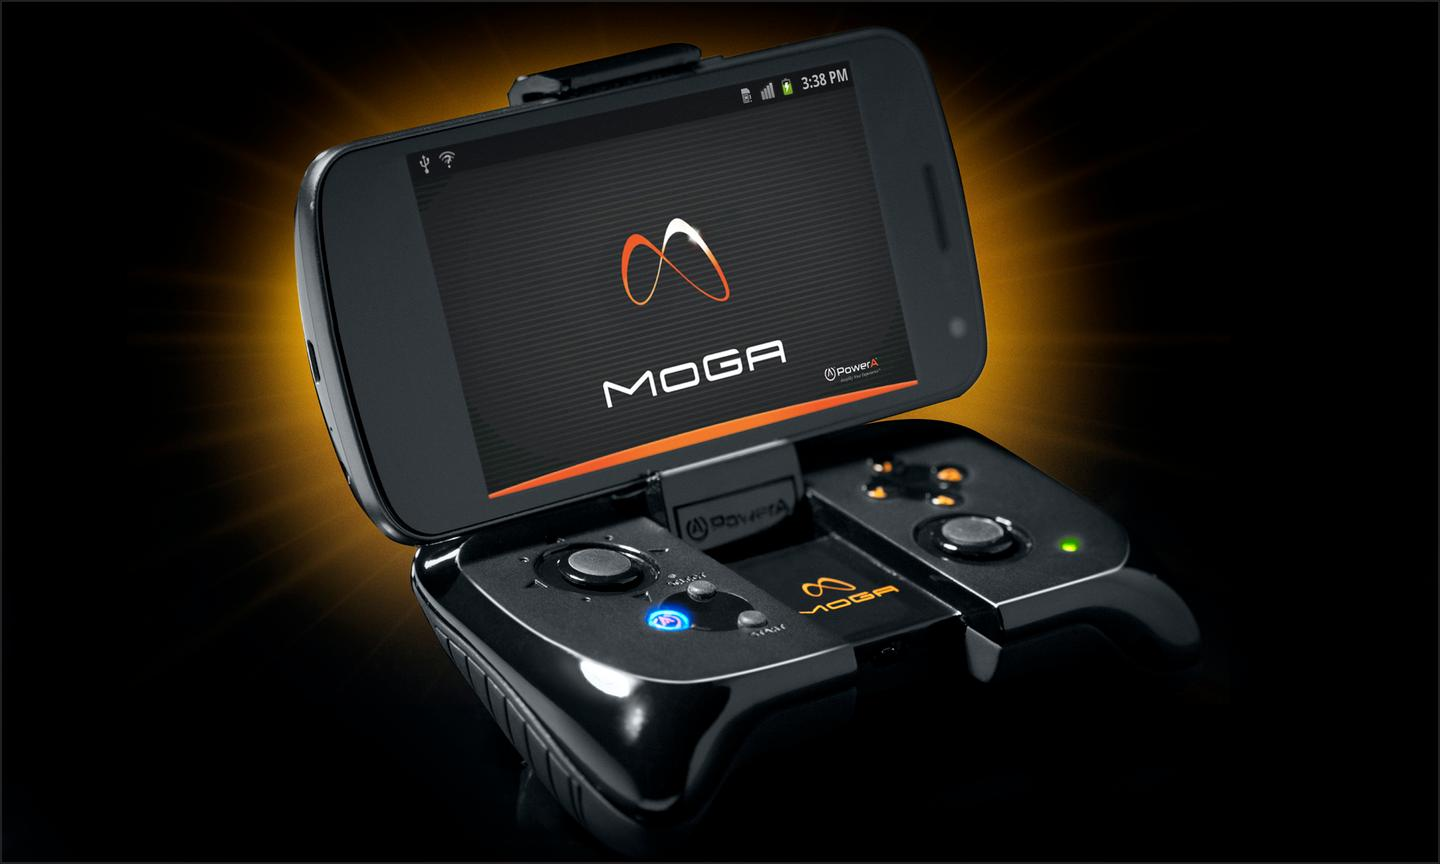 The PowerA MOGA provides a tactile response not found with a touch screen